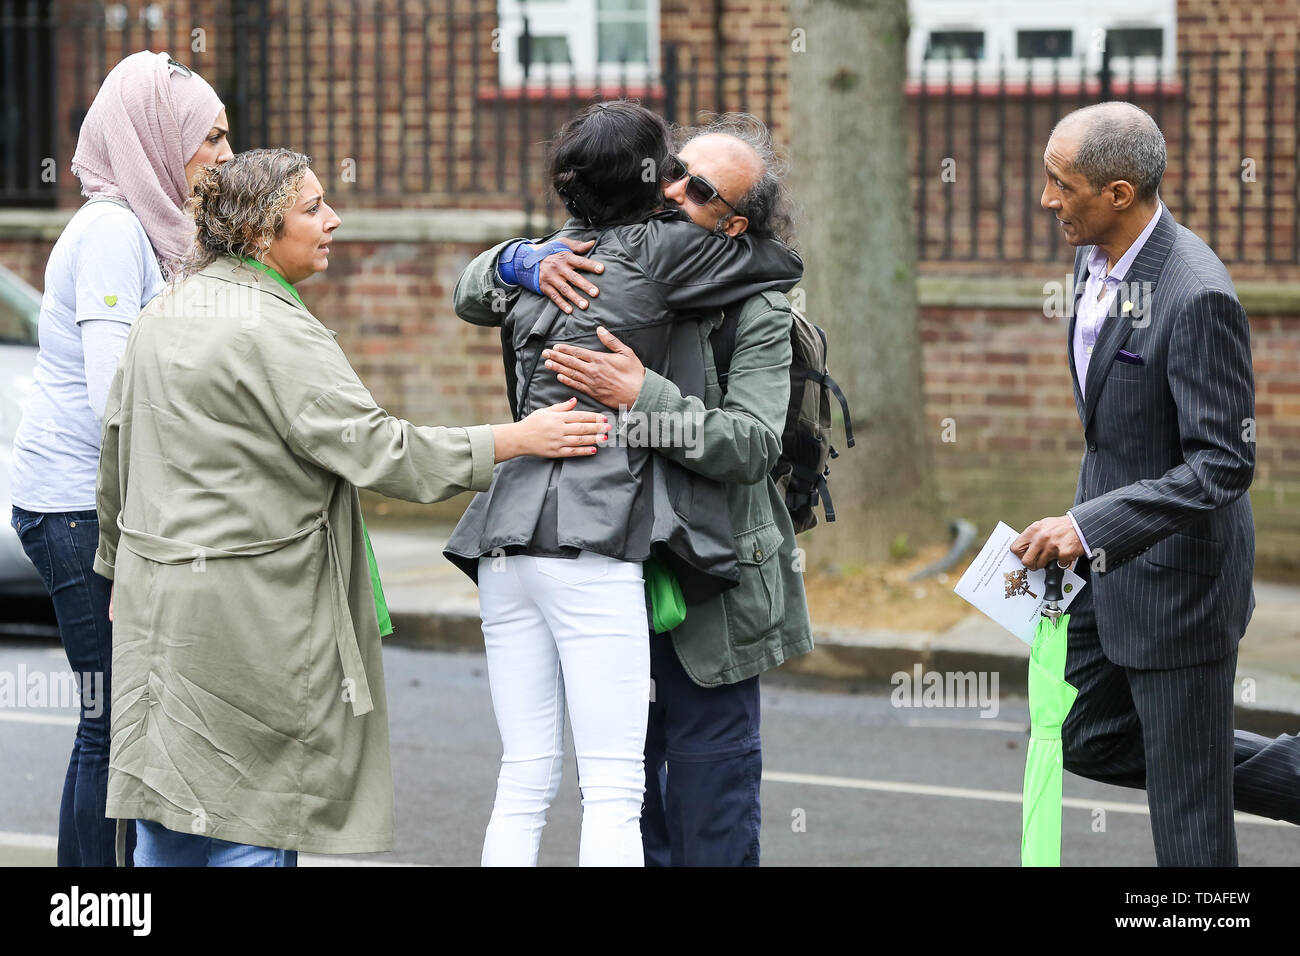 North Kensington, West London. UK 14 Jun 2019 - Survivors, family and friends of the victims arrive at St Helen's Church with floral tributes to commemorate the second anniversary of the Grenfell Tower fire. On 14 June 2017, just before 1:00Êam a fire broke out in the kitchen of the fourth floor flat at the 24-storey residential tower block in North Kensington, West London, which took the lives of 72 people. More than 70 others were injured and 223 people escaped.  Credit: Dinendra Haria/Alamy Live News - Stock Image